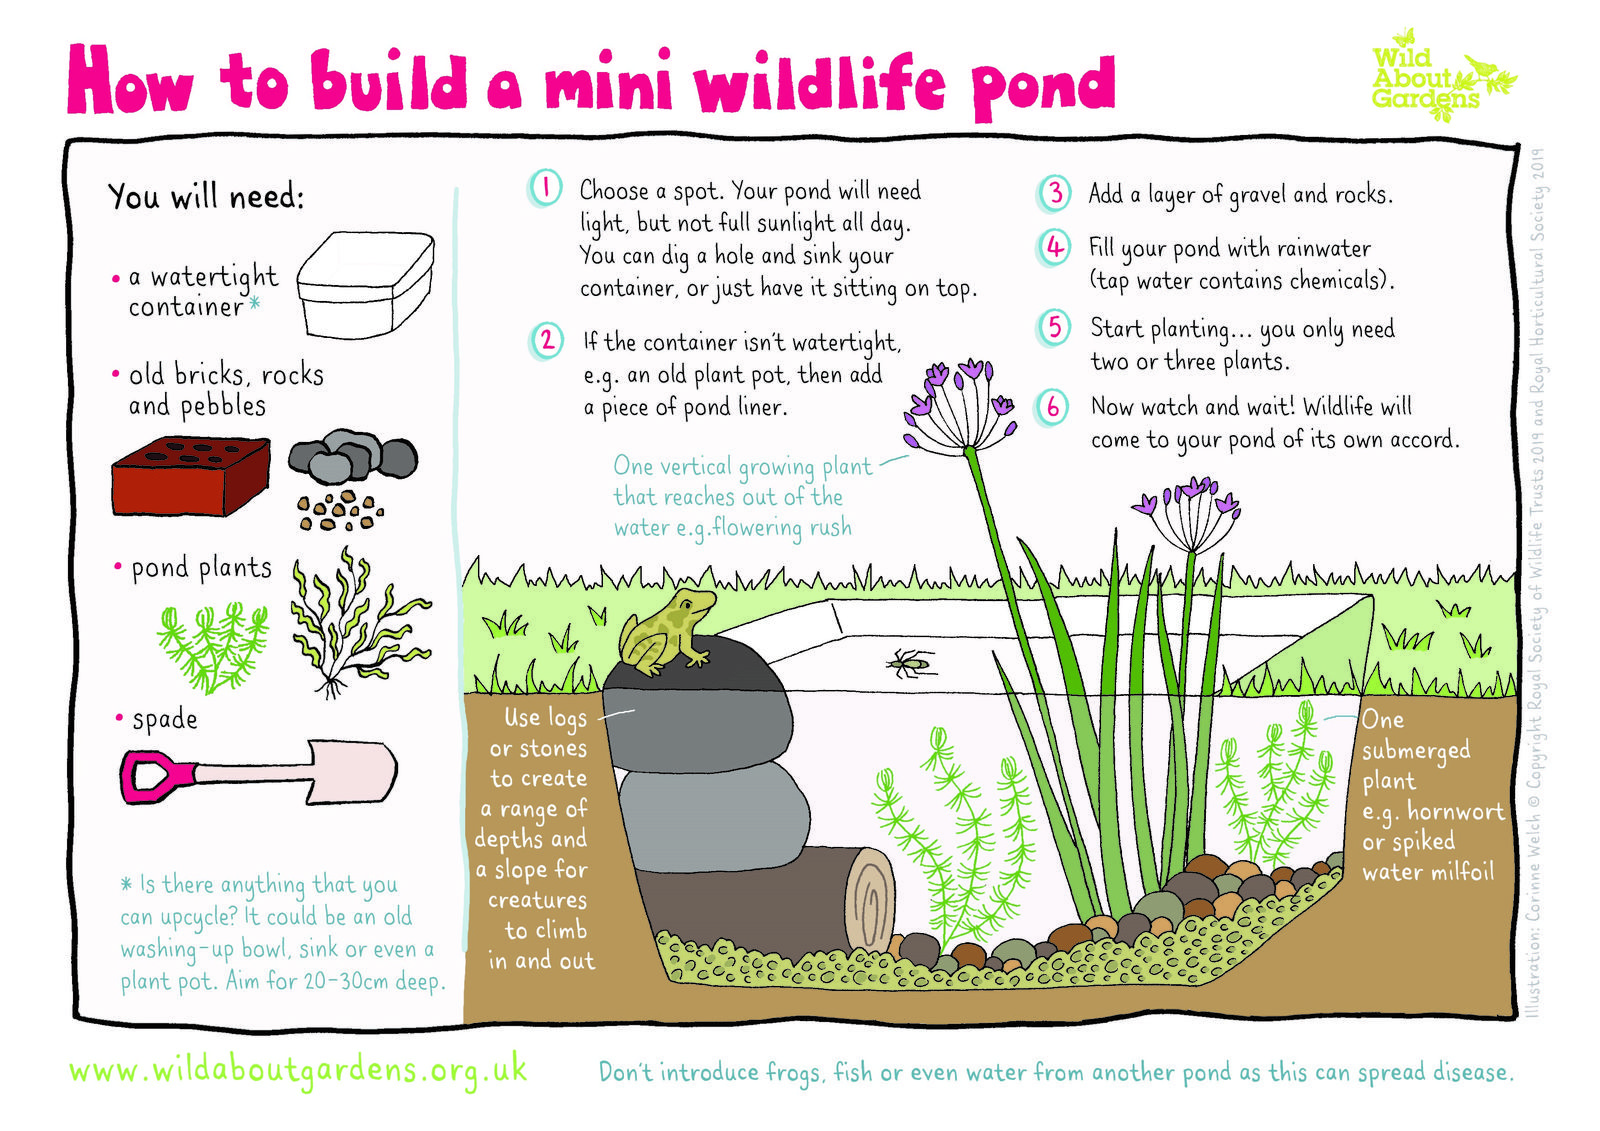 How To Build A Pond In Your Garden From Large Ponds To Container Ponds In 2020 Container Pond Building A Pond Mini Pond